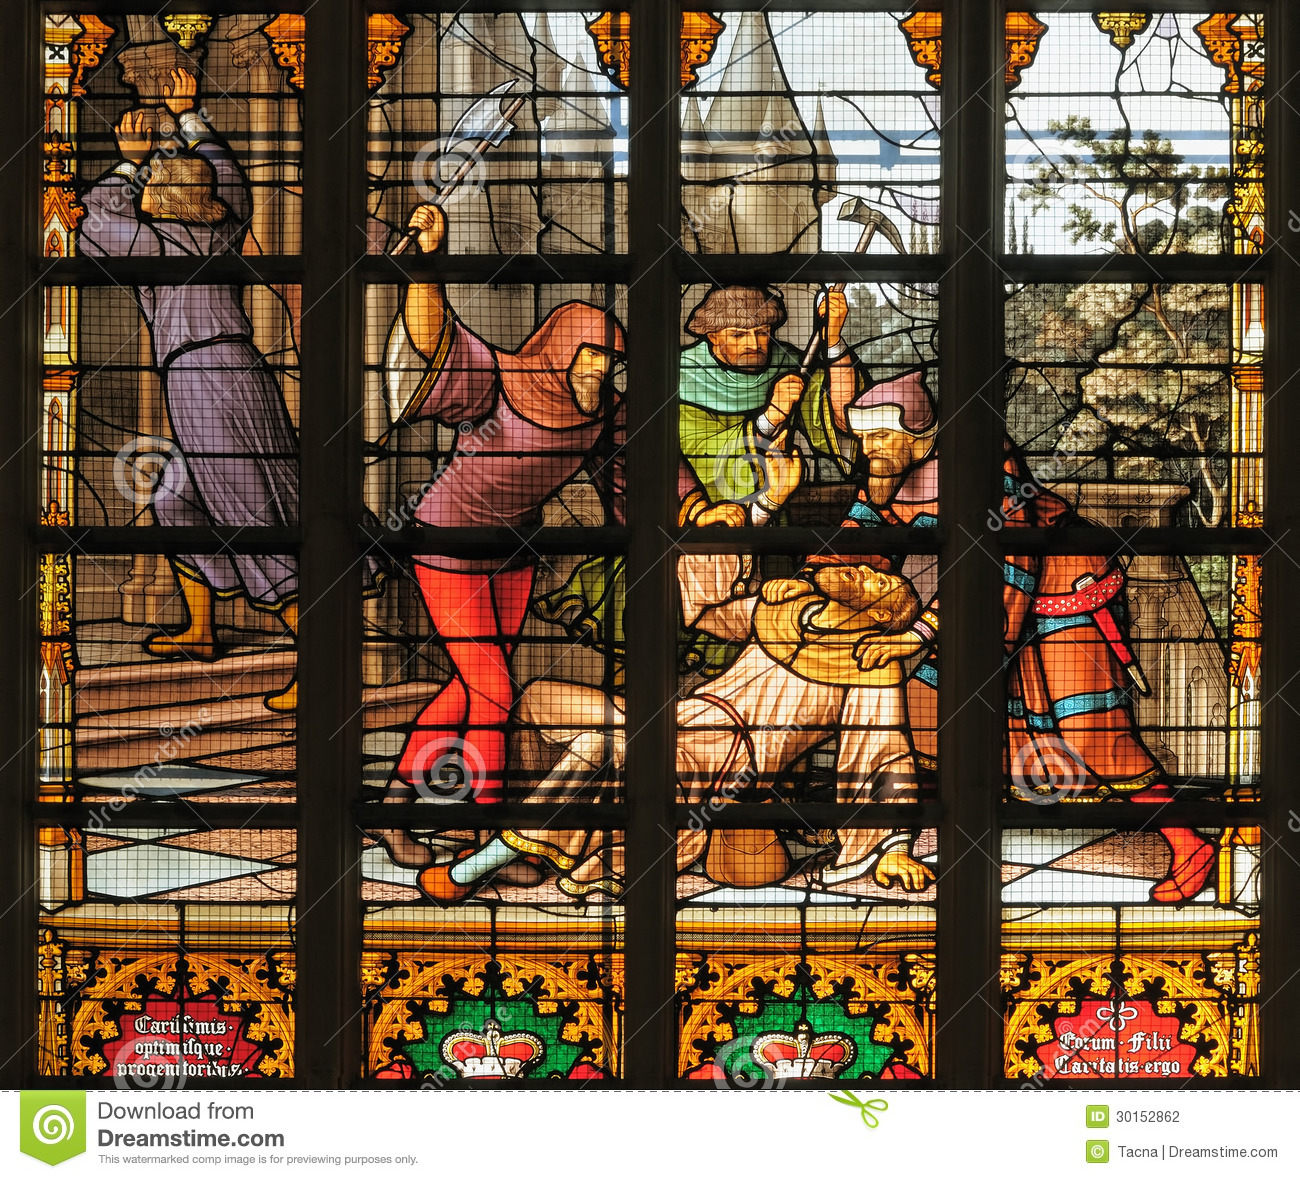 https://thumbs.dreamstime.com/z/brussels-belgium-november-medieval-scene-killing-stained-glass-window-st-michael-st-gudula-cathedral-november-30152862.jpg